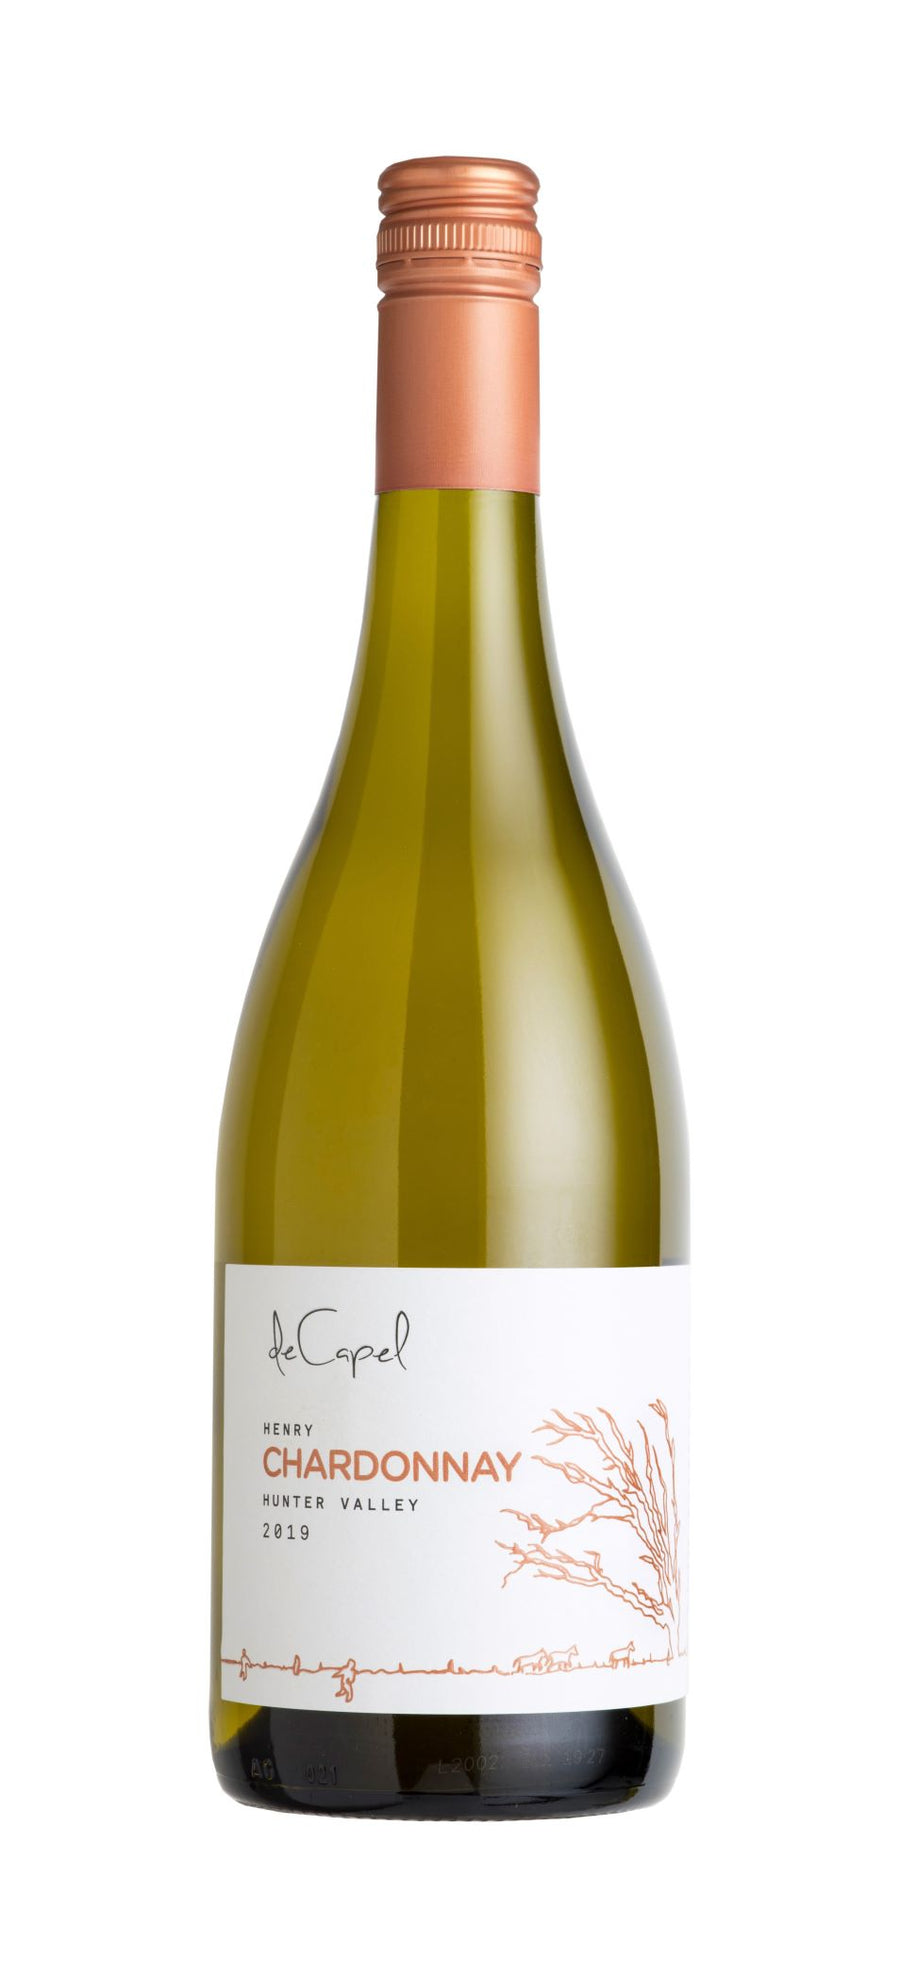 deCapel Henry Chardonnay